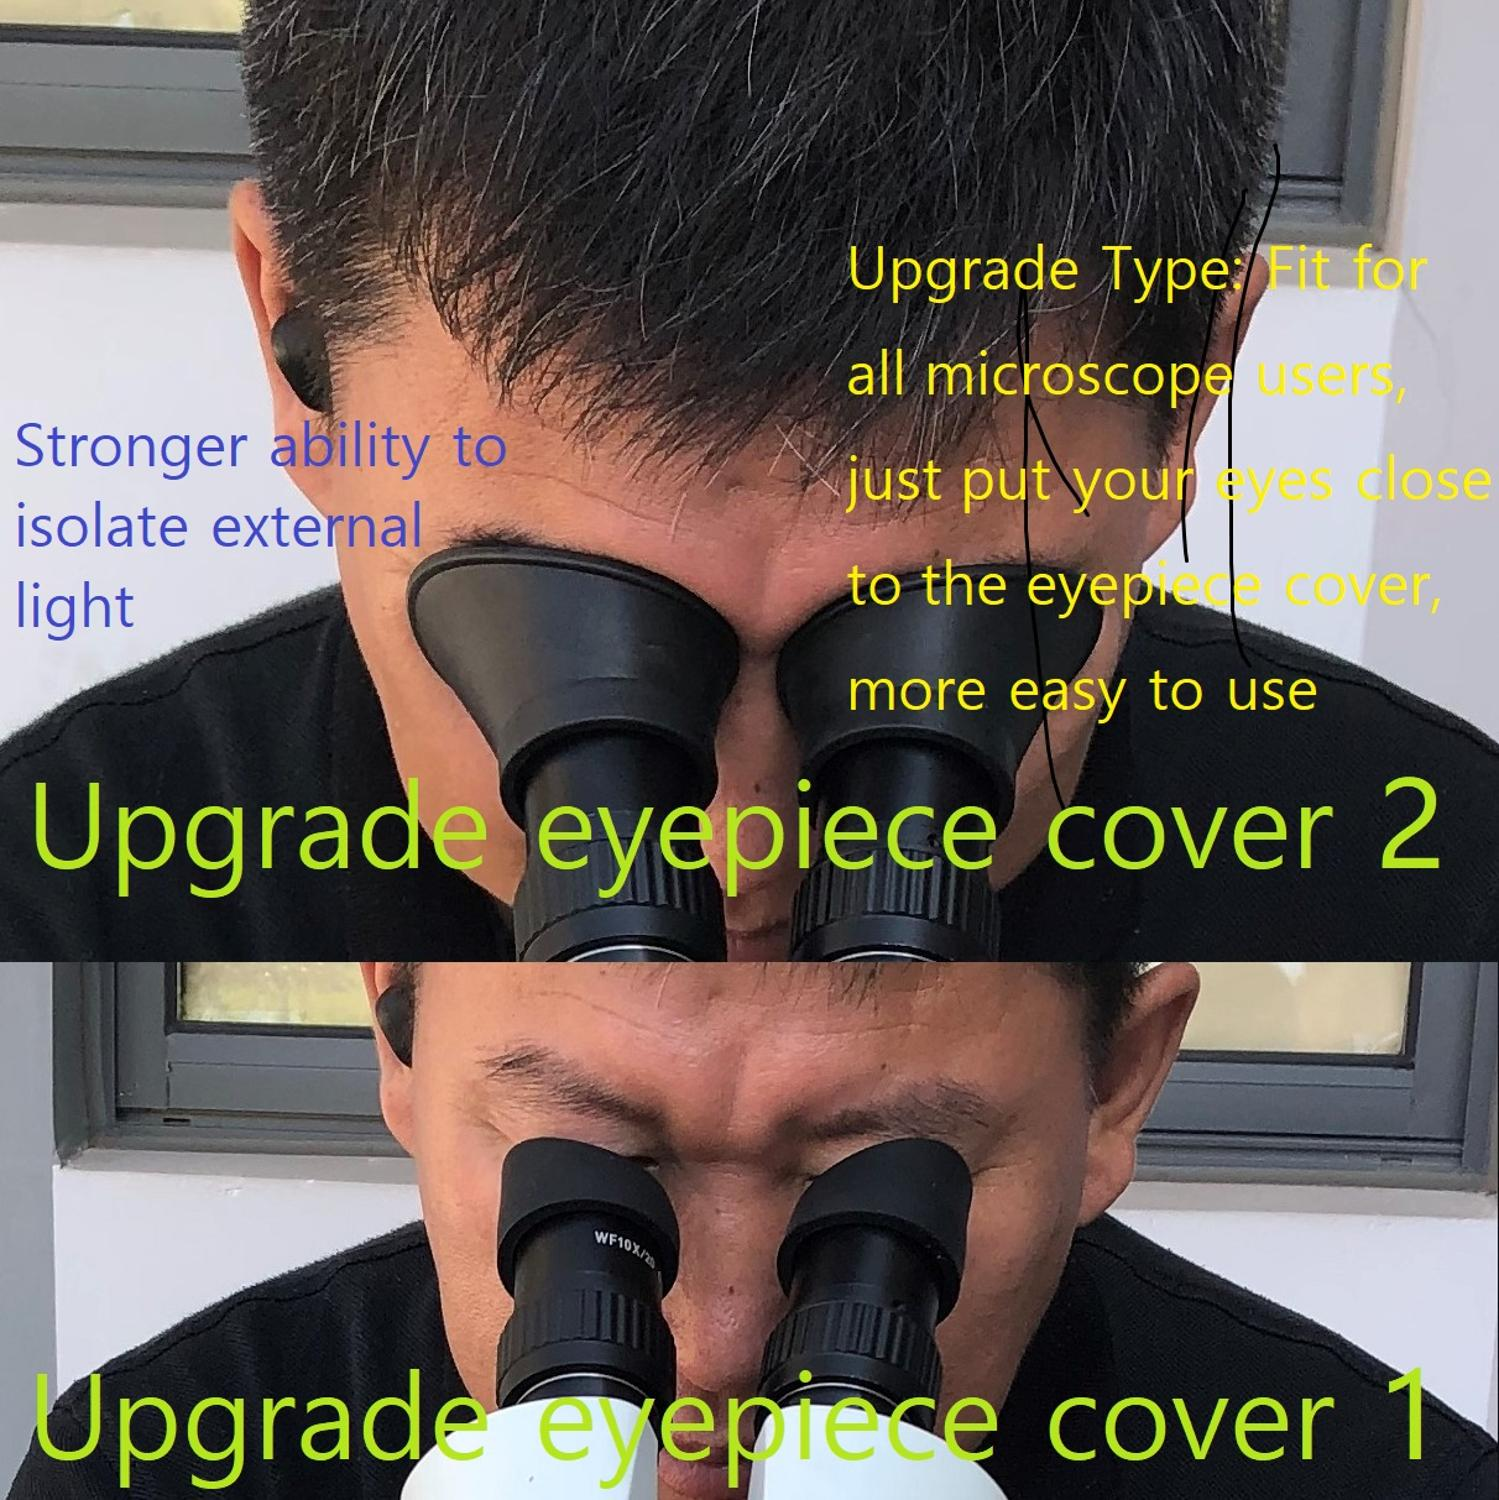 2 Pcs/Set Upgrade Microscope Eyepiece Guard Rubber Cover Eye Holder Binocular Stereo Microscope Large Eyepiece Protection Guards